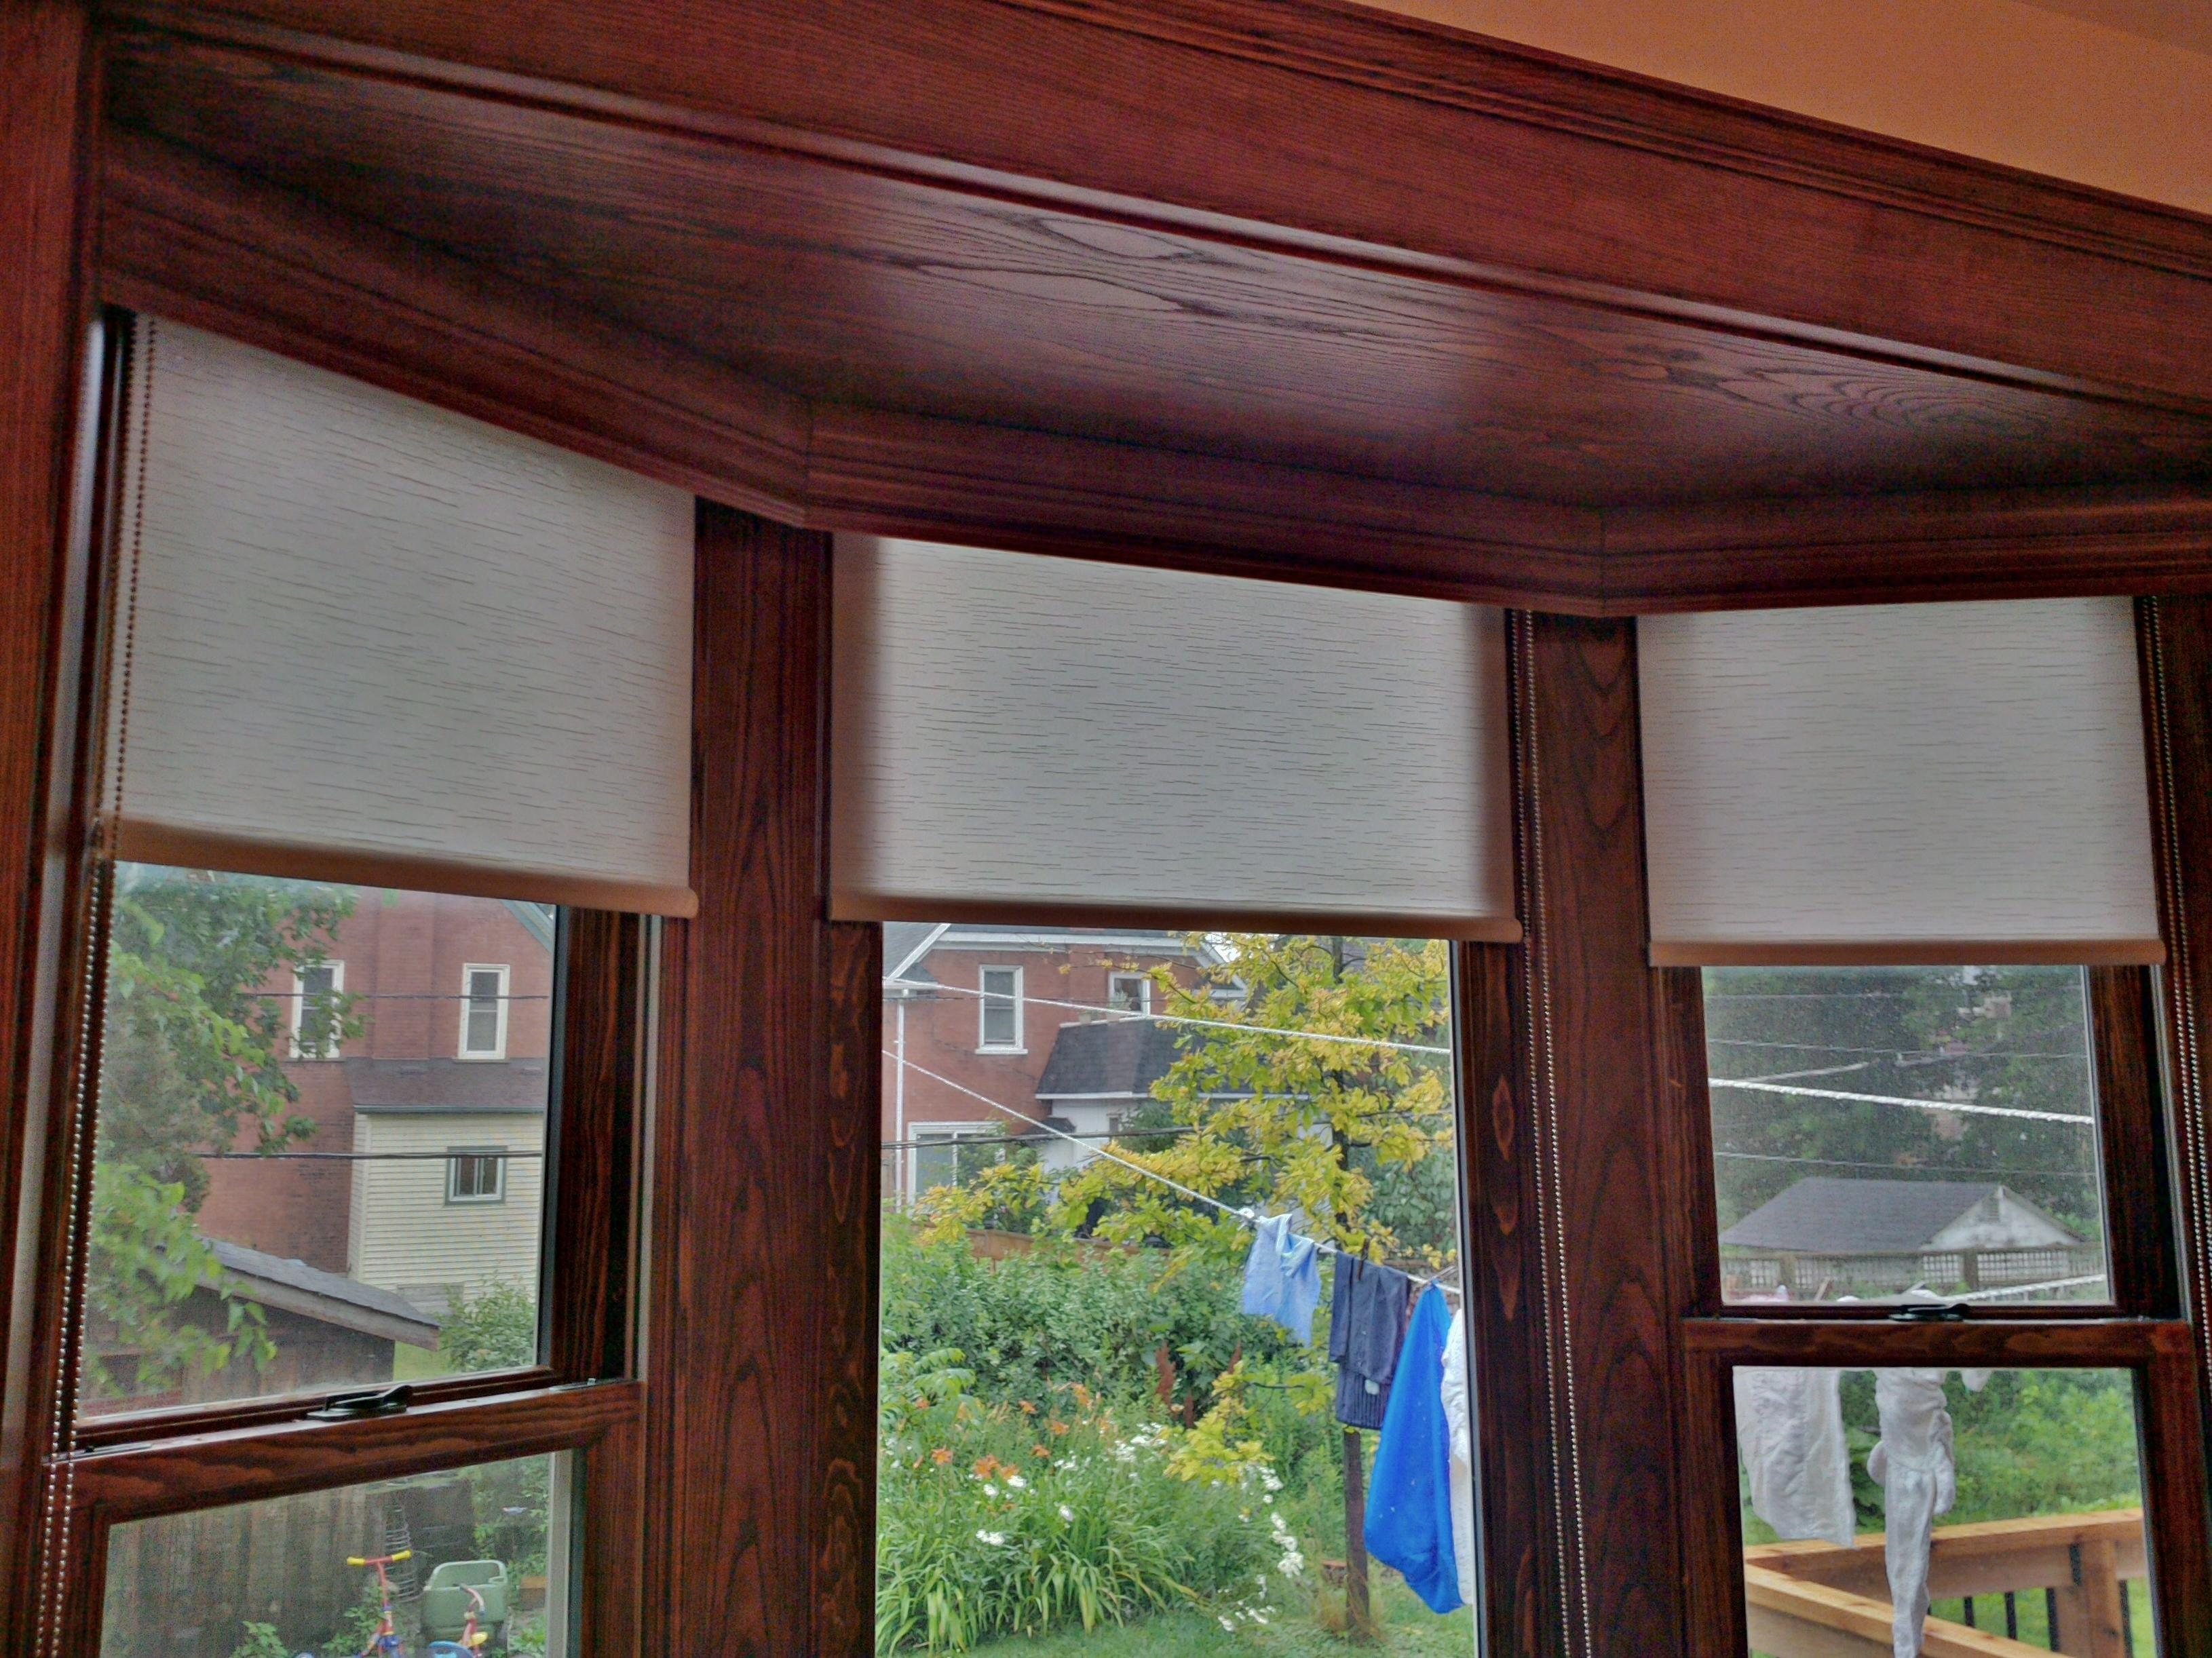 Budget Blinds à Waterloo: This client wanted privacy roller shades that could roll up and hide behind a wood valance that was stained to match their new custom woodwork.